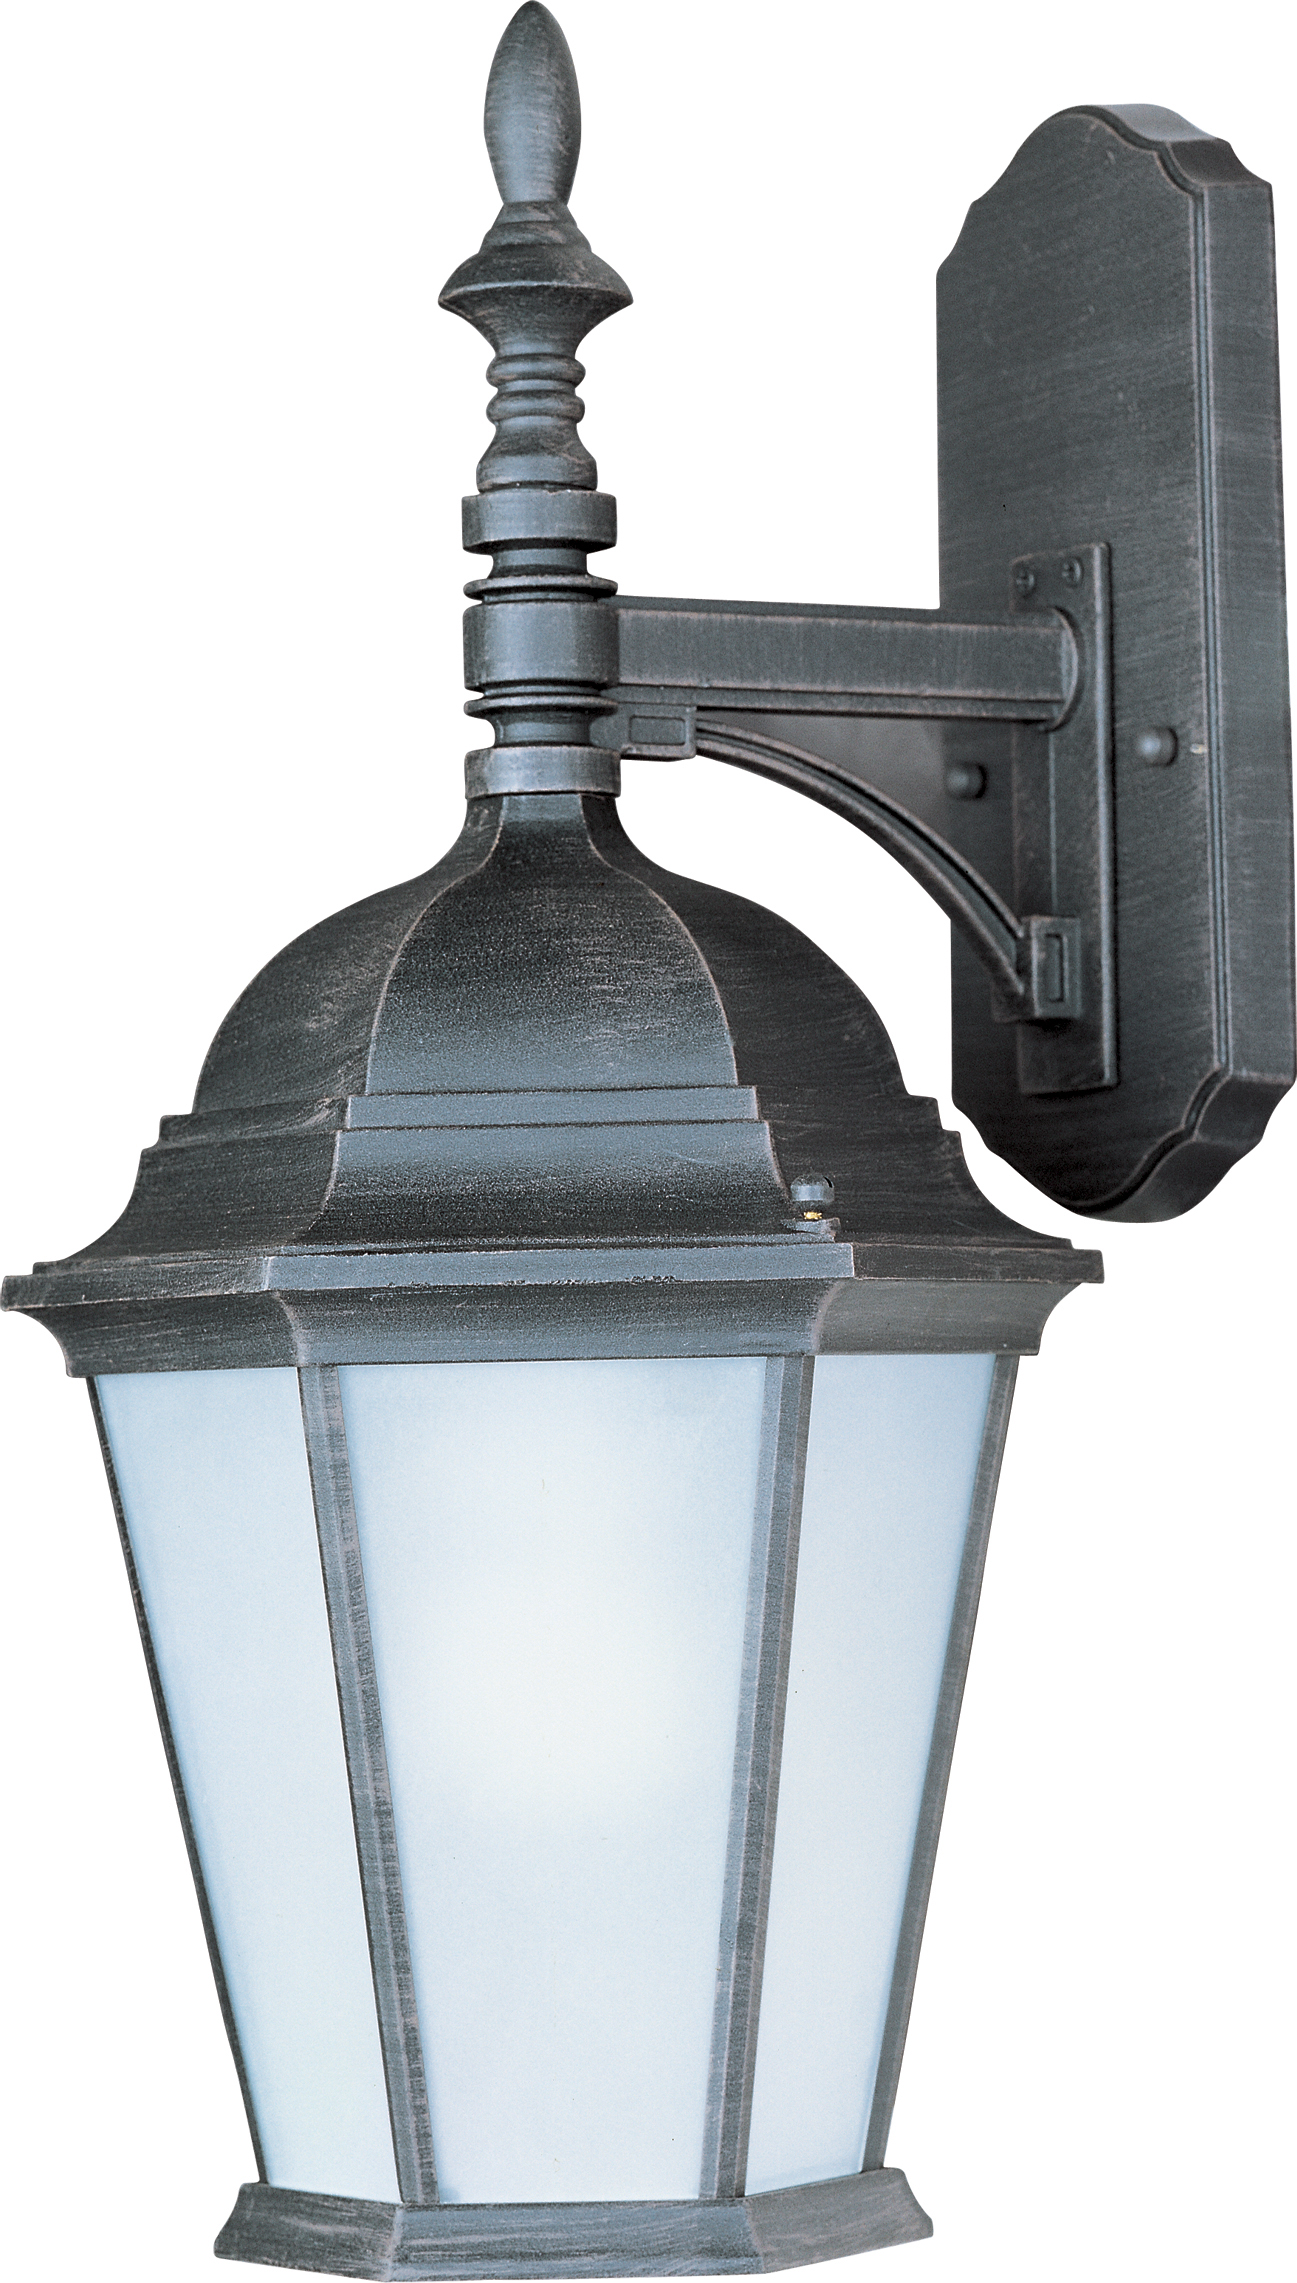 Wall Mounted Lantern Lamp : Westlake LED 1-Light Outdoor Wall Lantern - Outdoor Wall Mount - Maxim Lighting